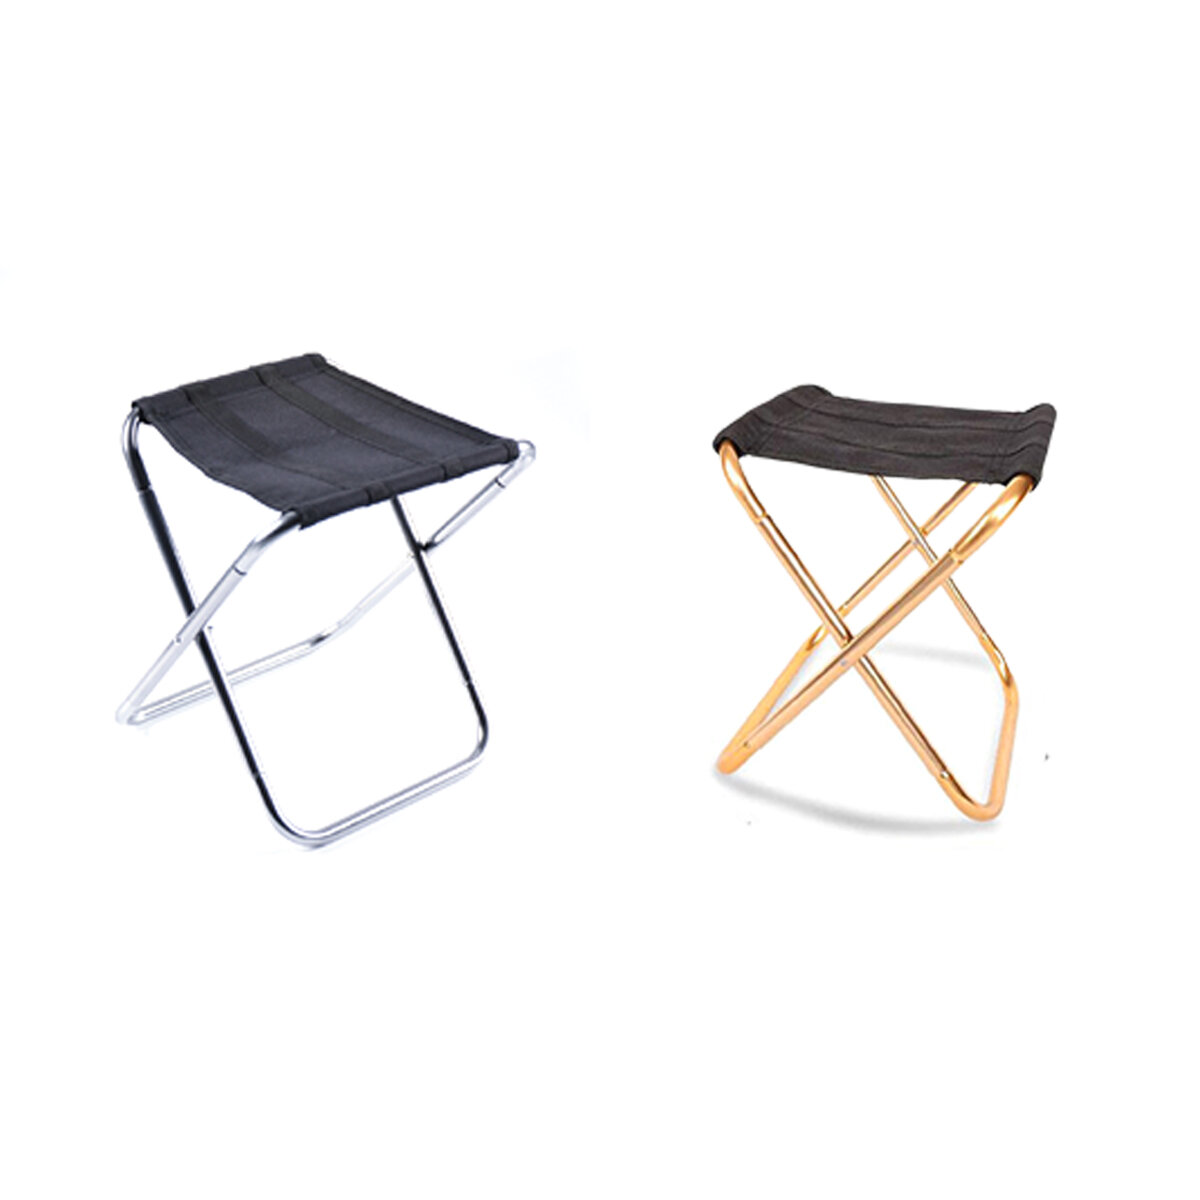 Outdoor Camping Folding Chair Aluminum Alloy Aviation Aluminum Fishing Chair Portable Folding Stool